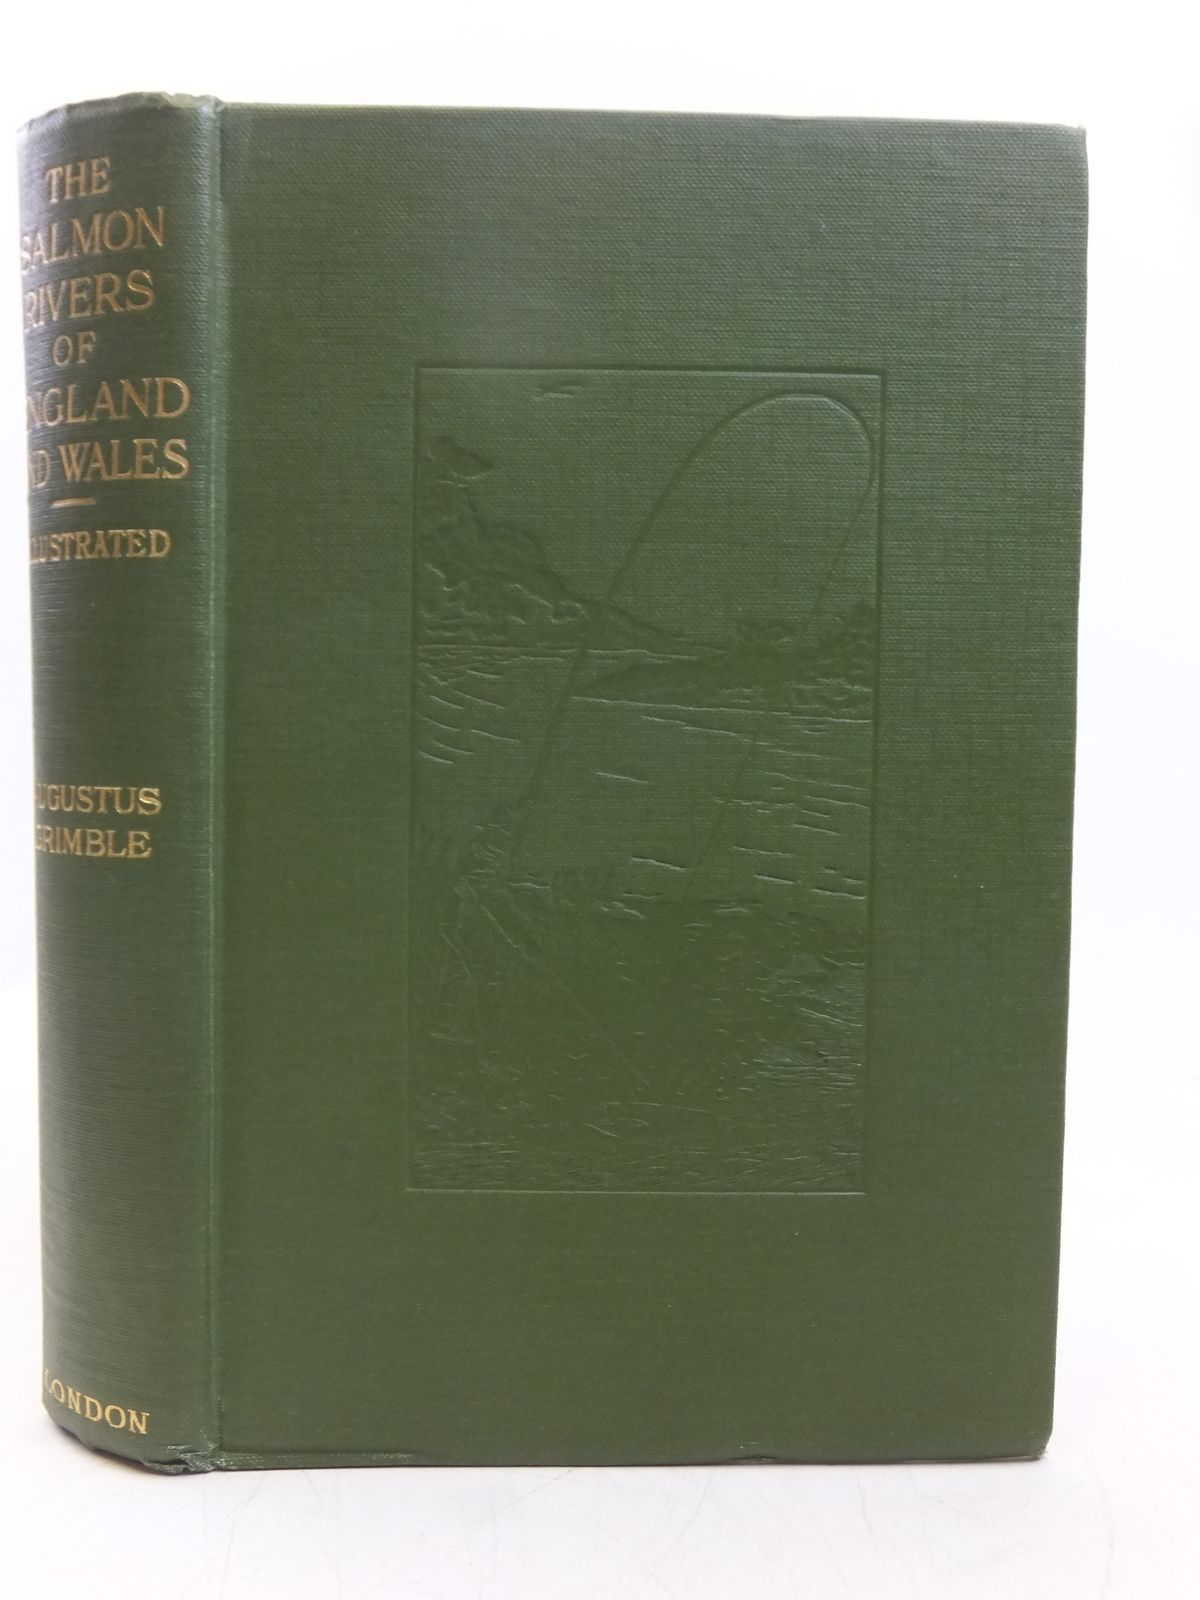 Photo of THE SALMON RIVERS OF ENGLAND & WALES written by Grimble, Augustus published by Kegan Paul, Trench, Trubner & Co. Ltd. (STOCK CODE: 2119385)  for sale by Stella & Rose's Books